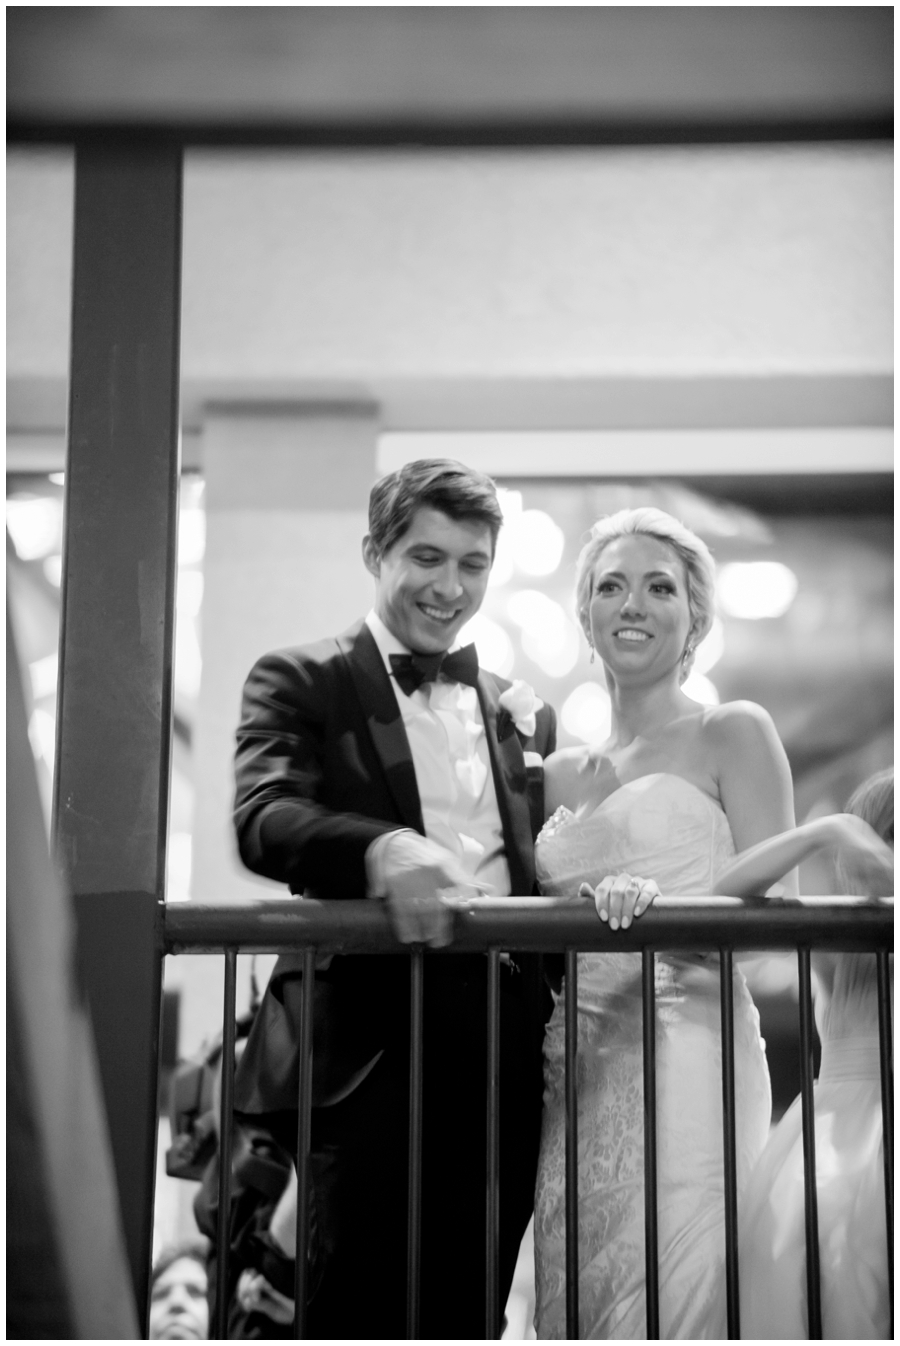 Ariane Moshayedi Photography - Wedding Photographer Orange County Newport Beach_0264.jpg